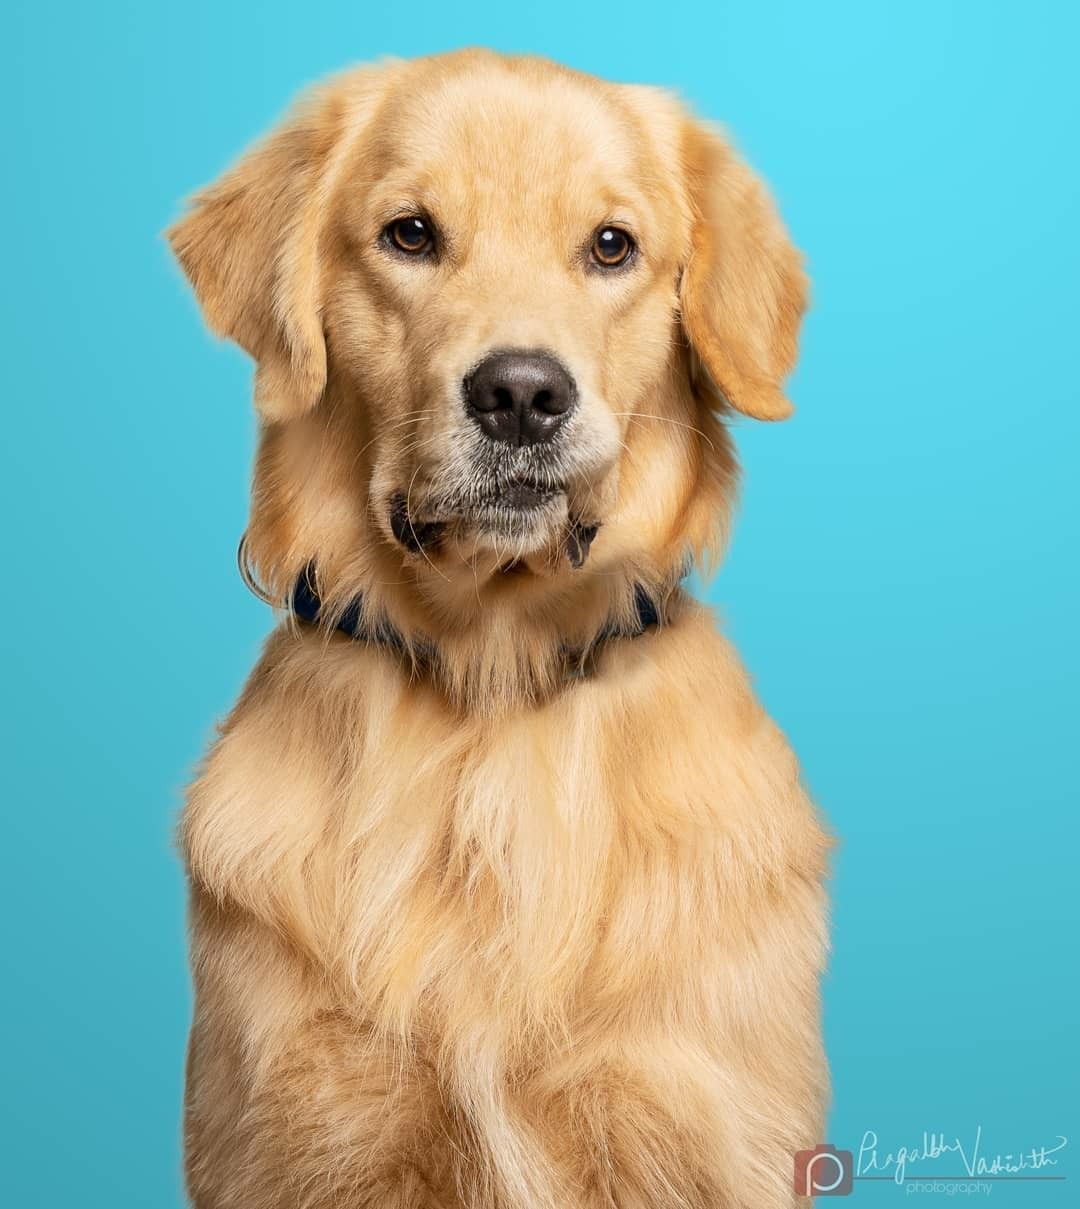 Pin By Neha Chowhan On Dogs Golden Retriever Dogs Animals